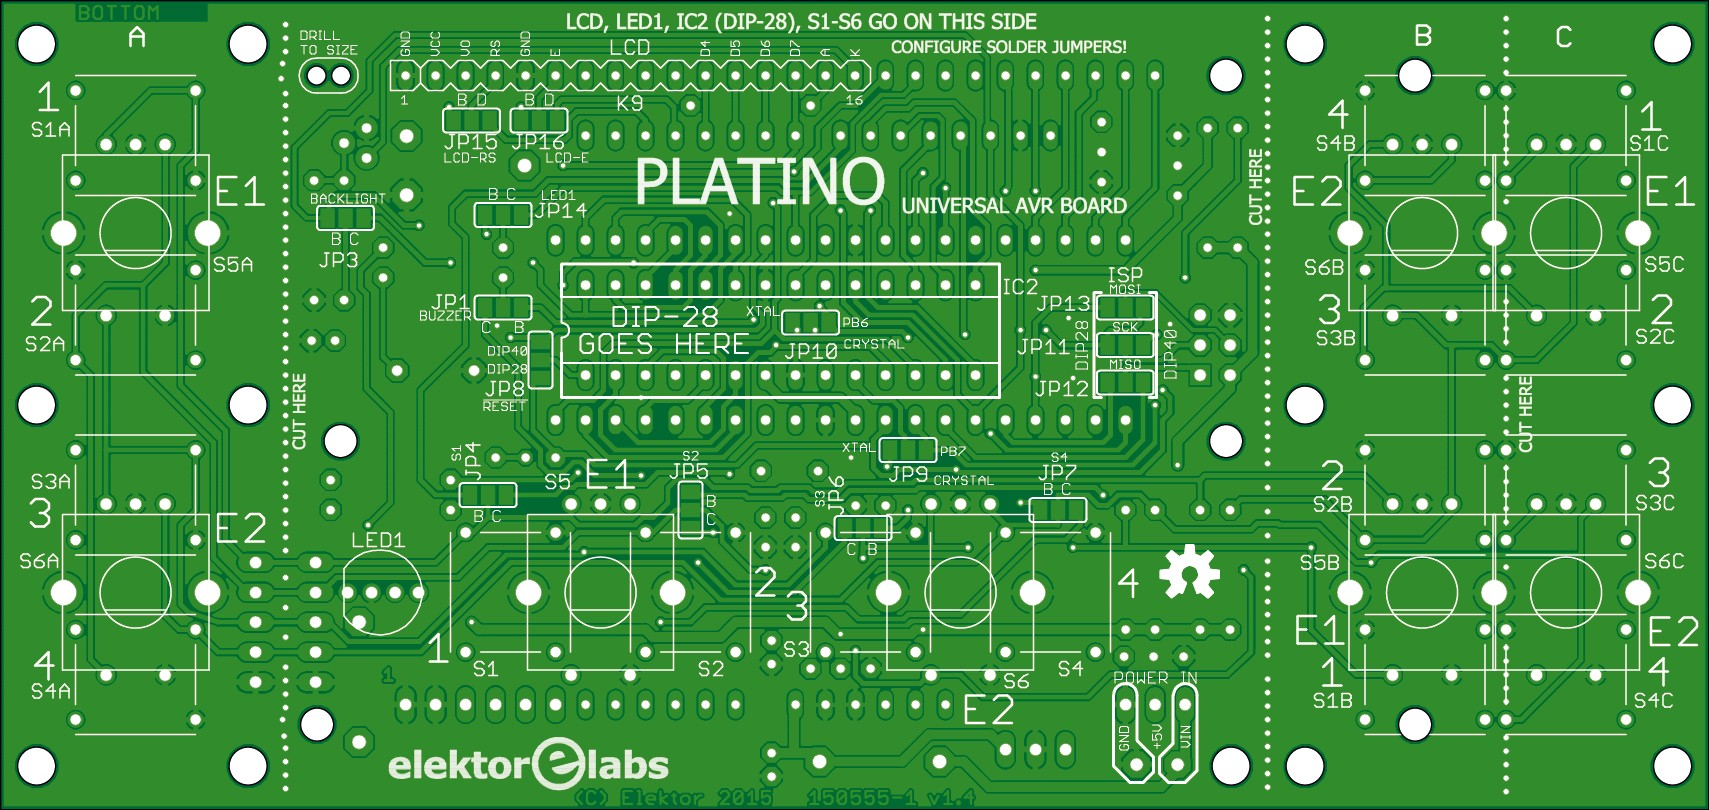 Platino Adjustable Bench Power Supply 130406 1 Elektor Labs Pcbofdigitaltemperaturesensorcircuitusinglm335z V14 150555